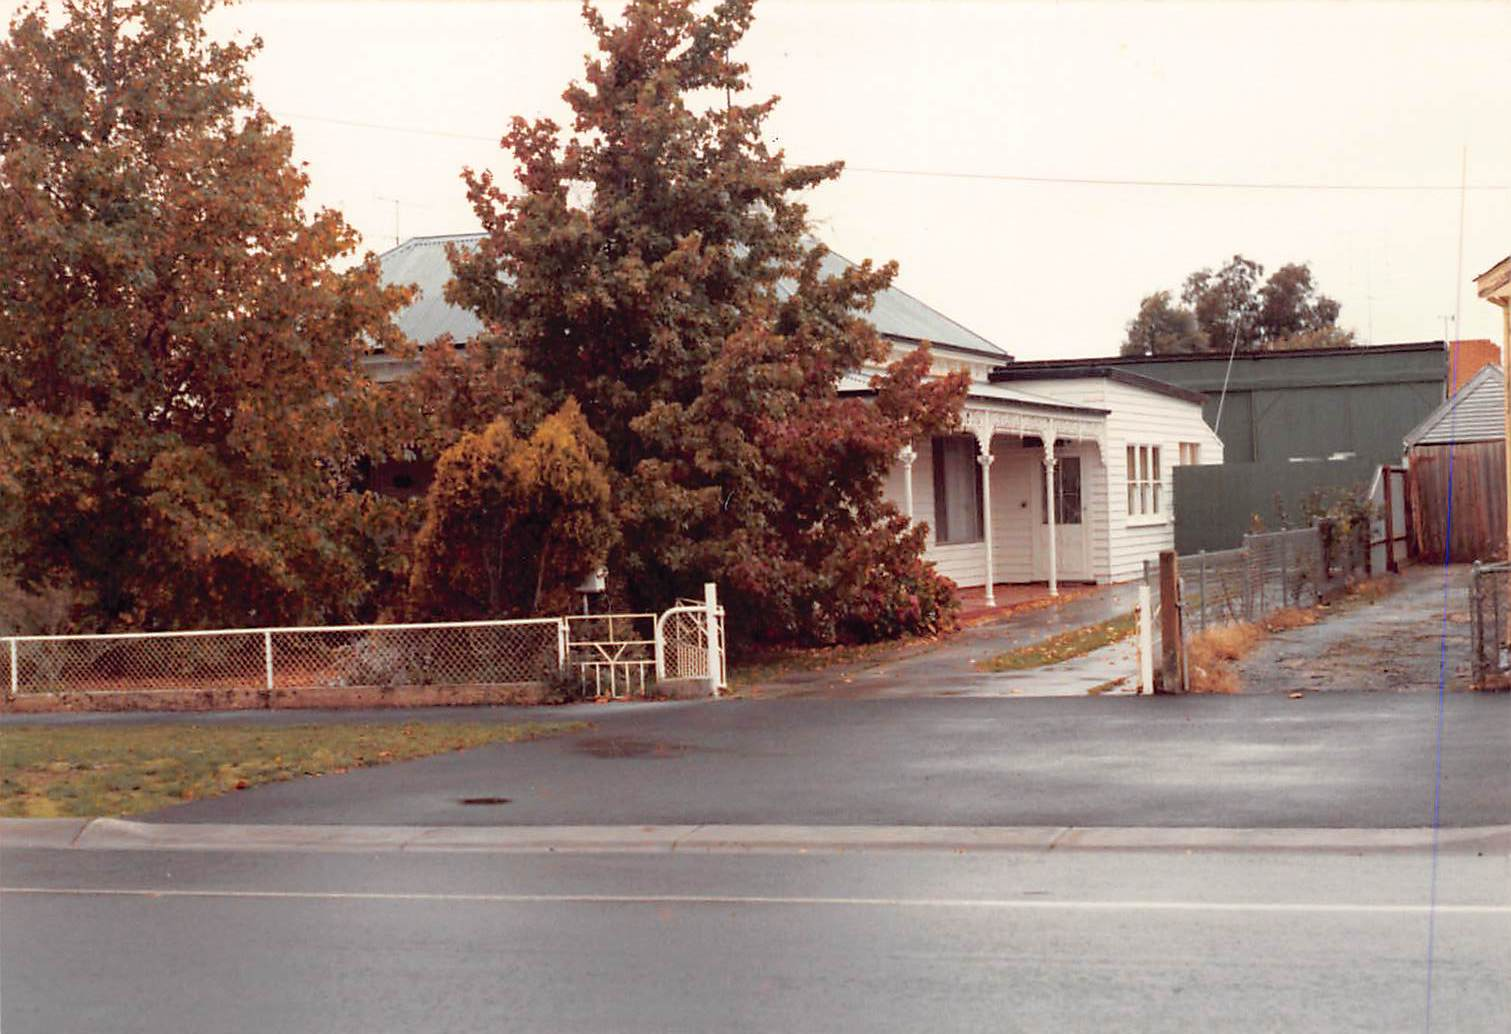 505 Drummond Street about 1993